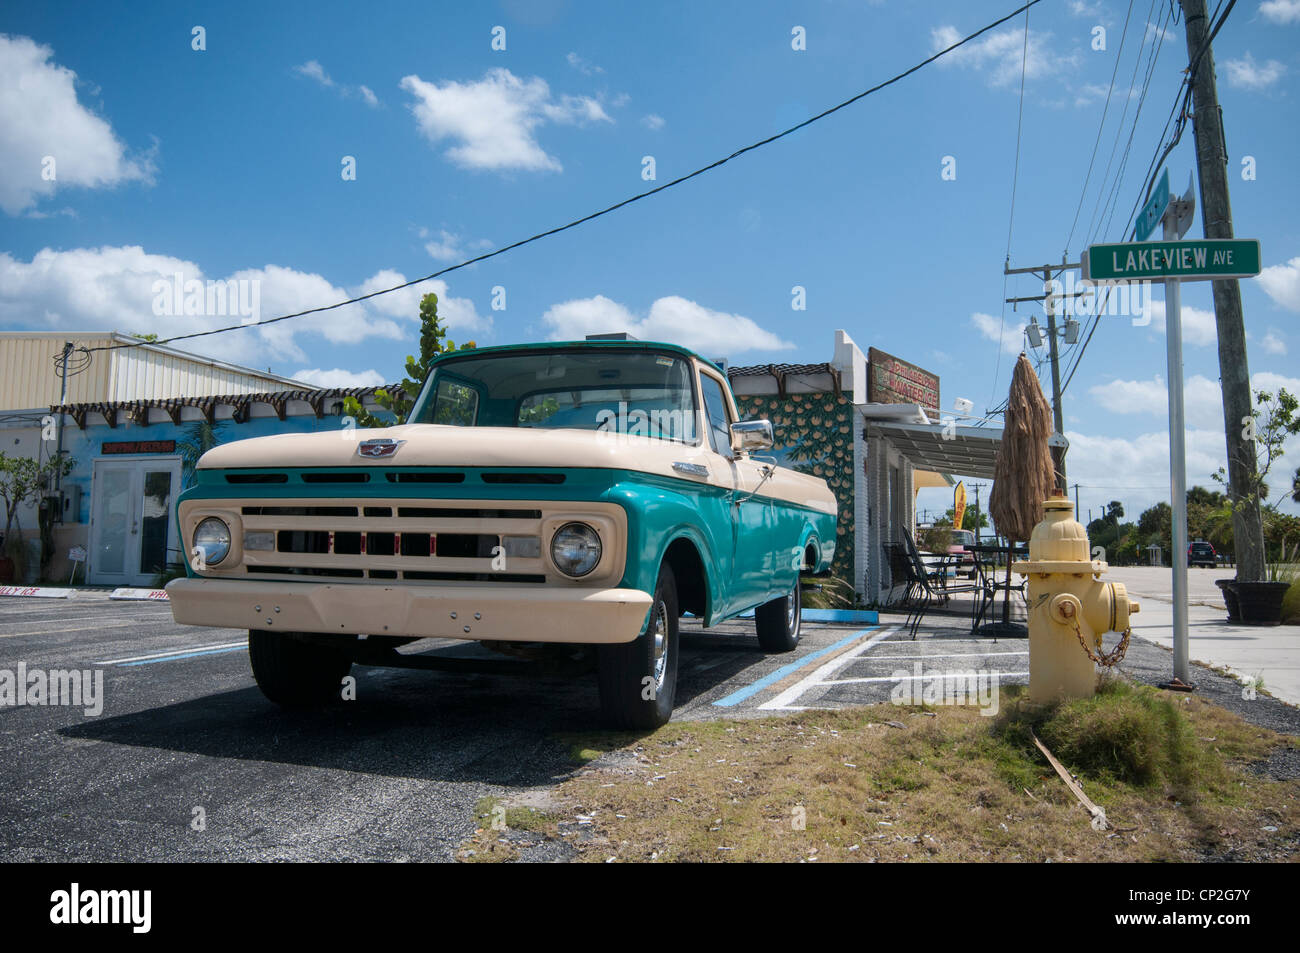 Old Ford pick-up truck in Florida Stock Photo: 47999839 - Alamy